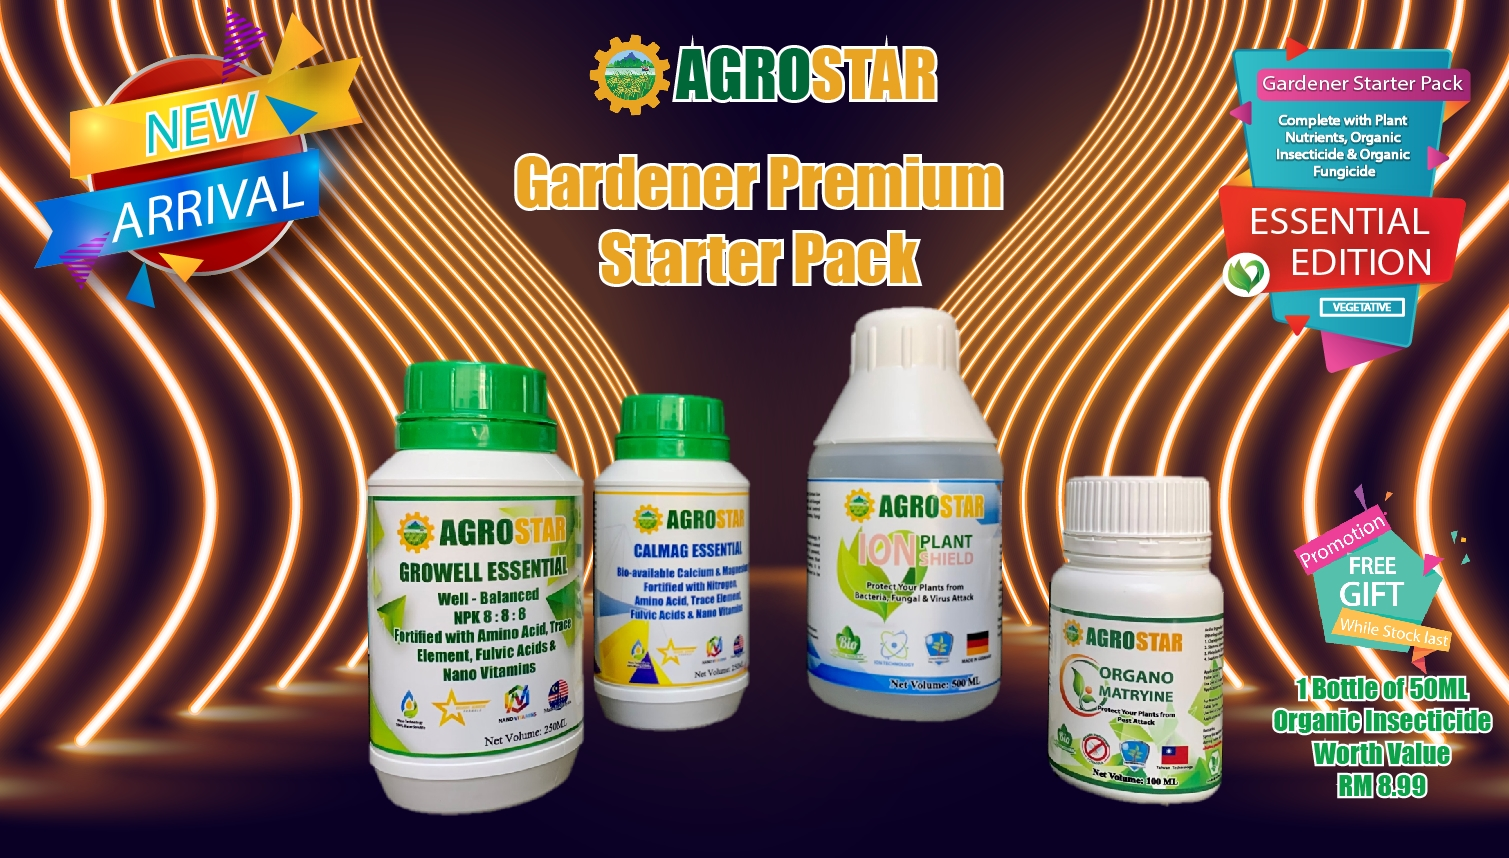 AGROSTAR Gardener Premium Starter Pack Essential Edition for Vegetative Plants ( Complete with Growell and Calmag Essential Plant Nutrients , Organo Matryine Organic Insecticide and Ion Plant Shield Organic Fungicide ) Plus Free Gift